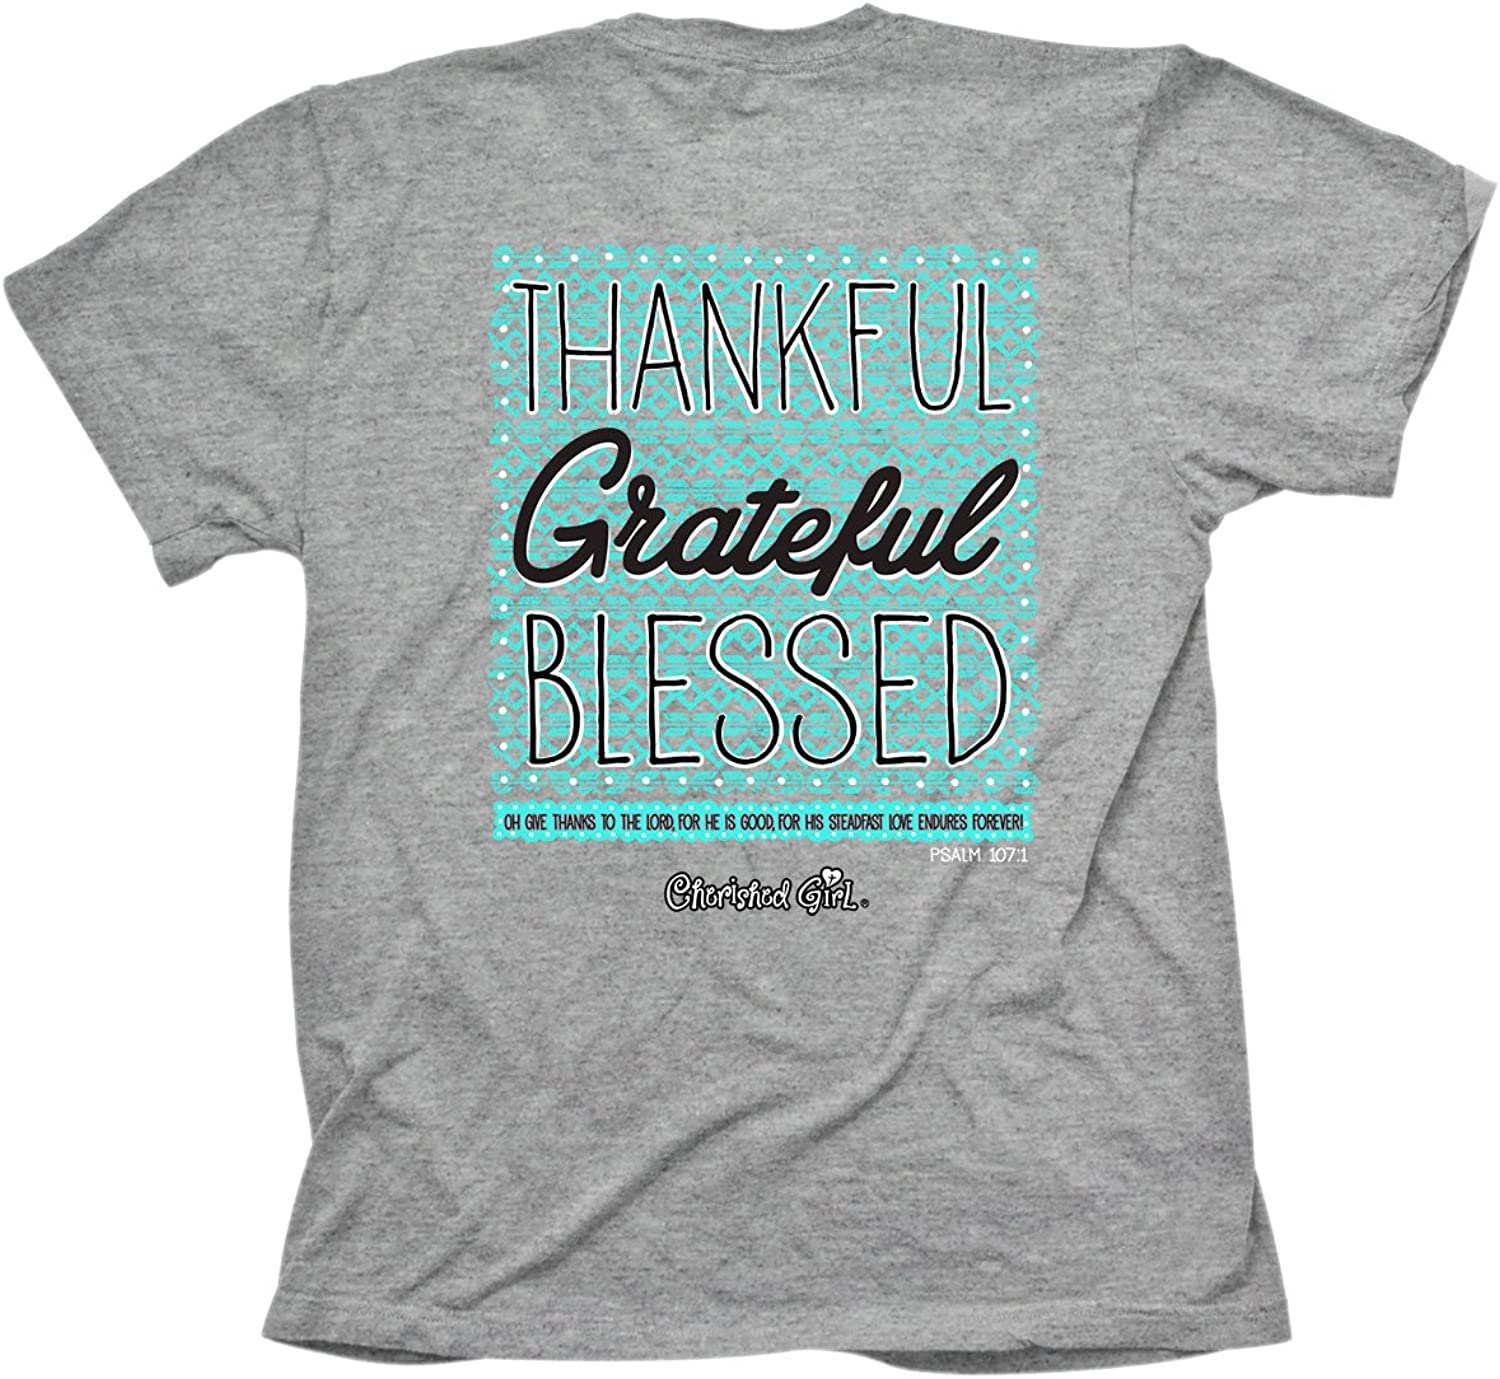 Cherished Girl Thankful Grateful Blessed Women's Christian TShirt